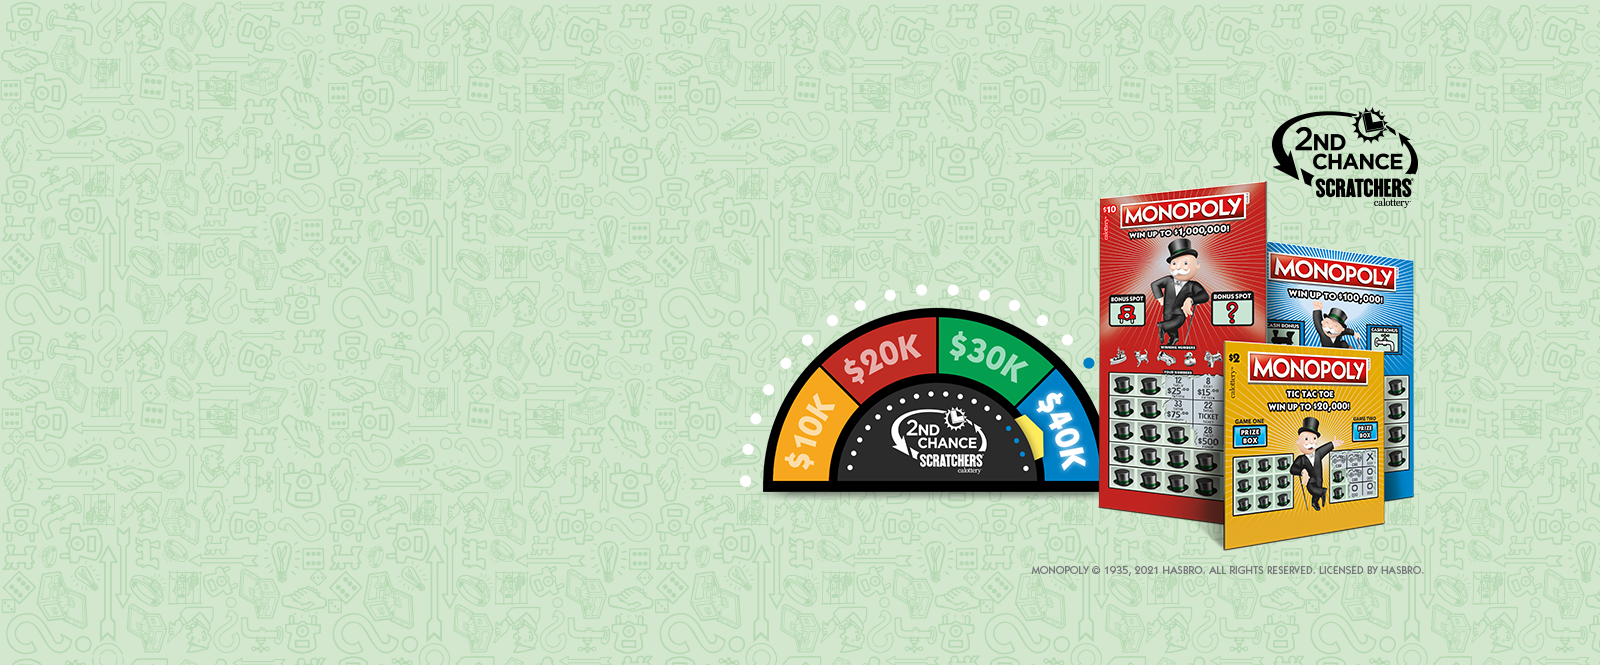 Monopoly Scratchers with 2nd chance prize meters